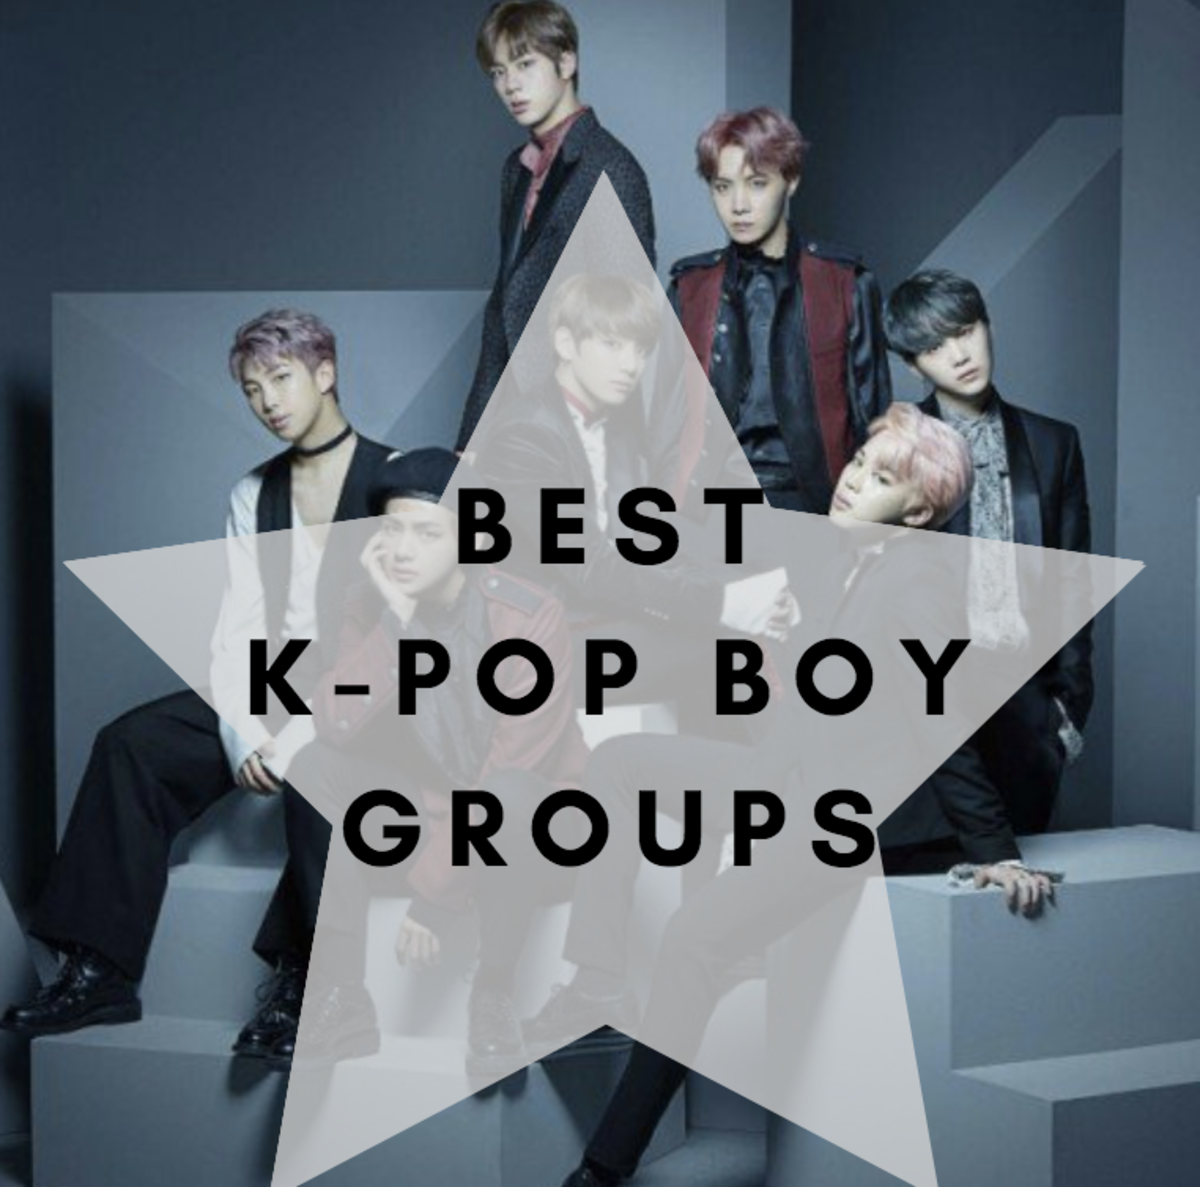 Explore the very best K-Pop boy groups in the world!